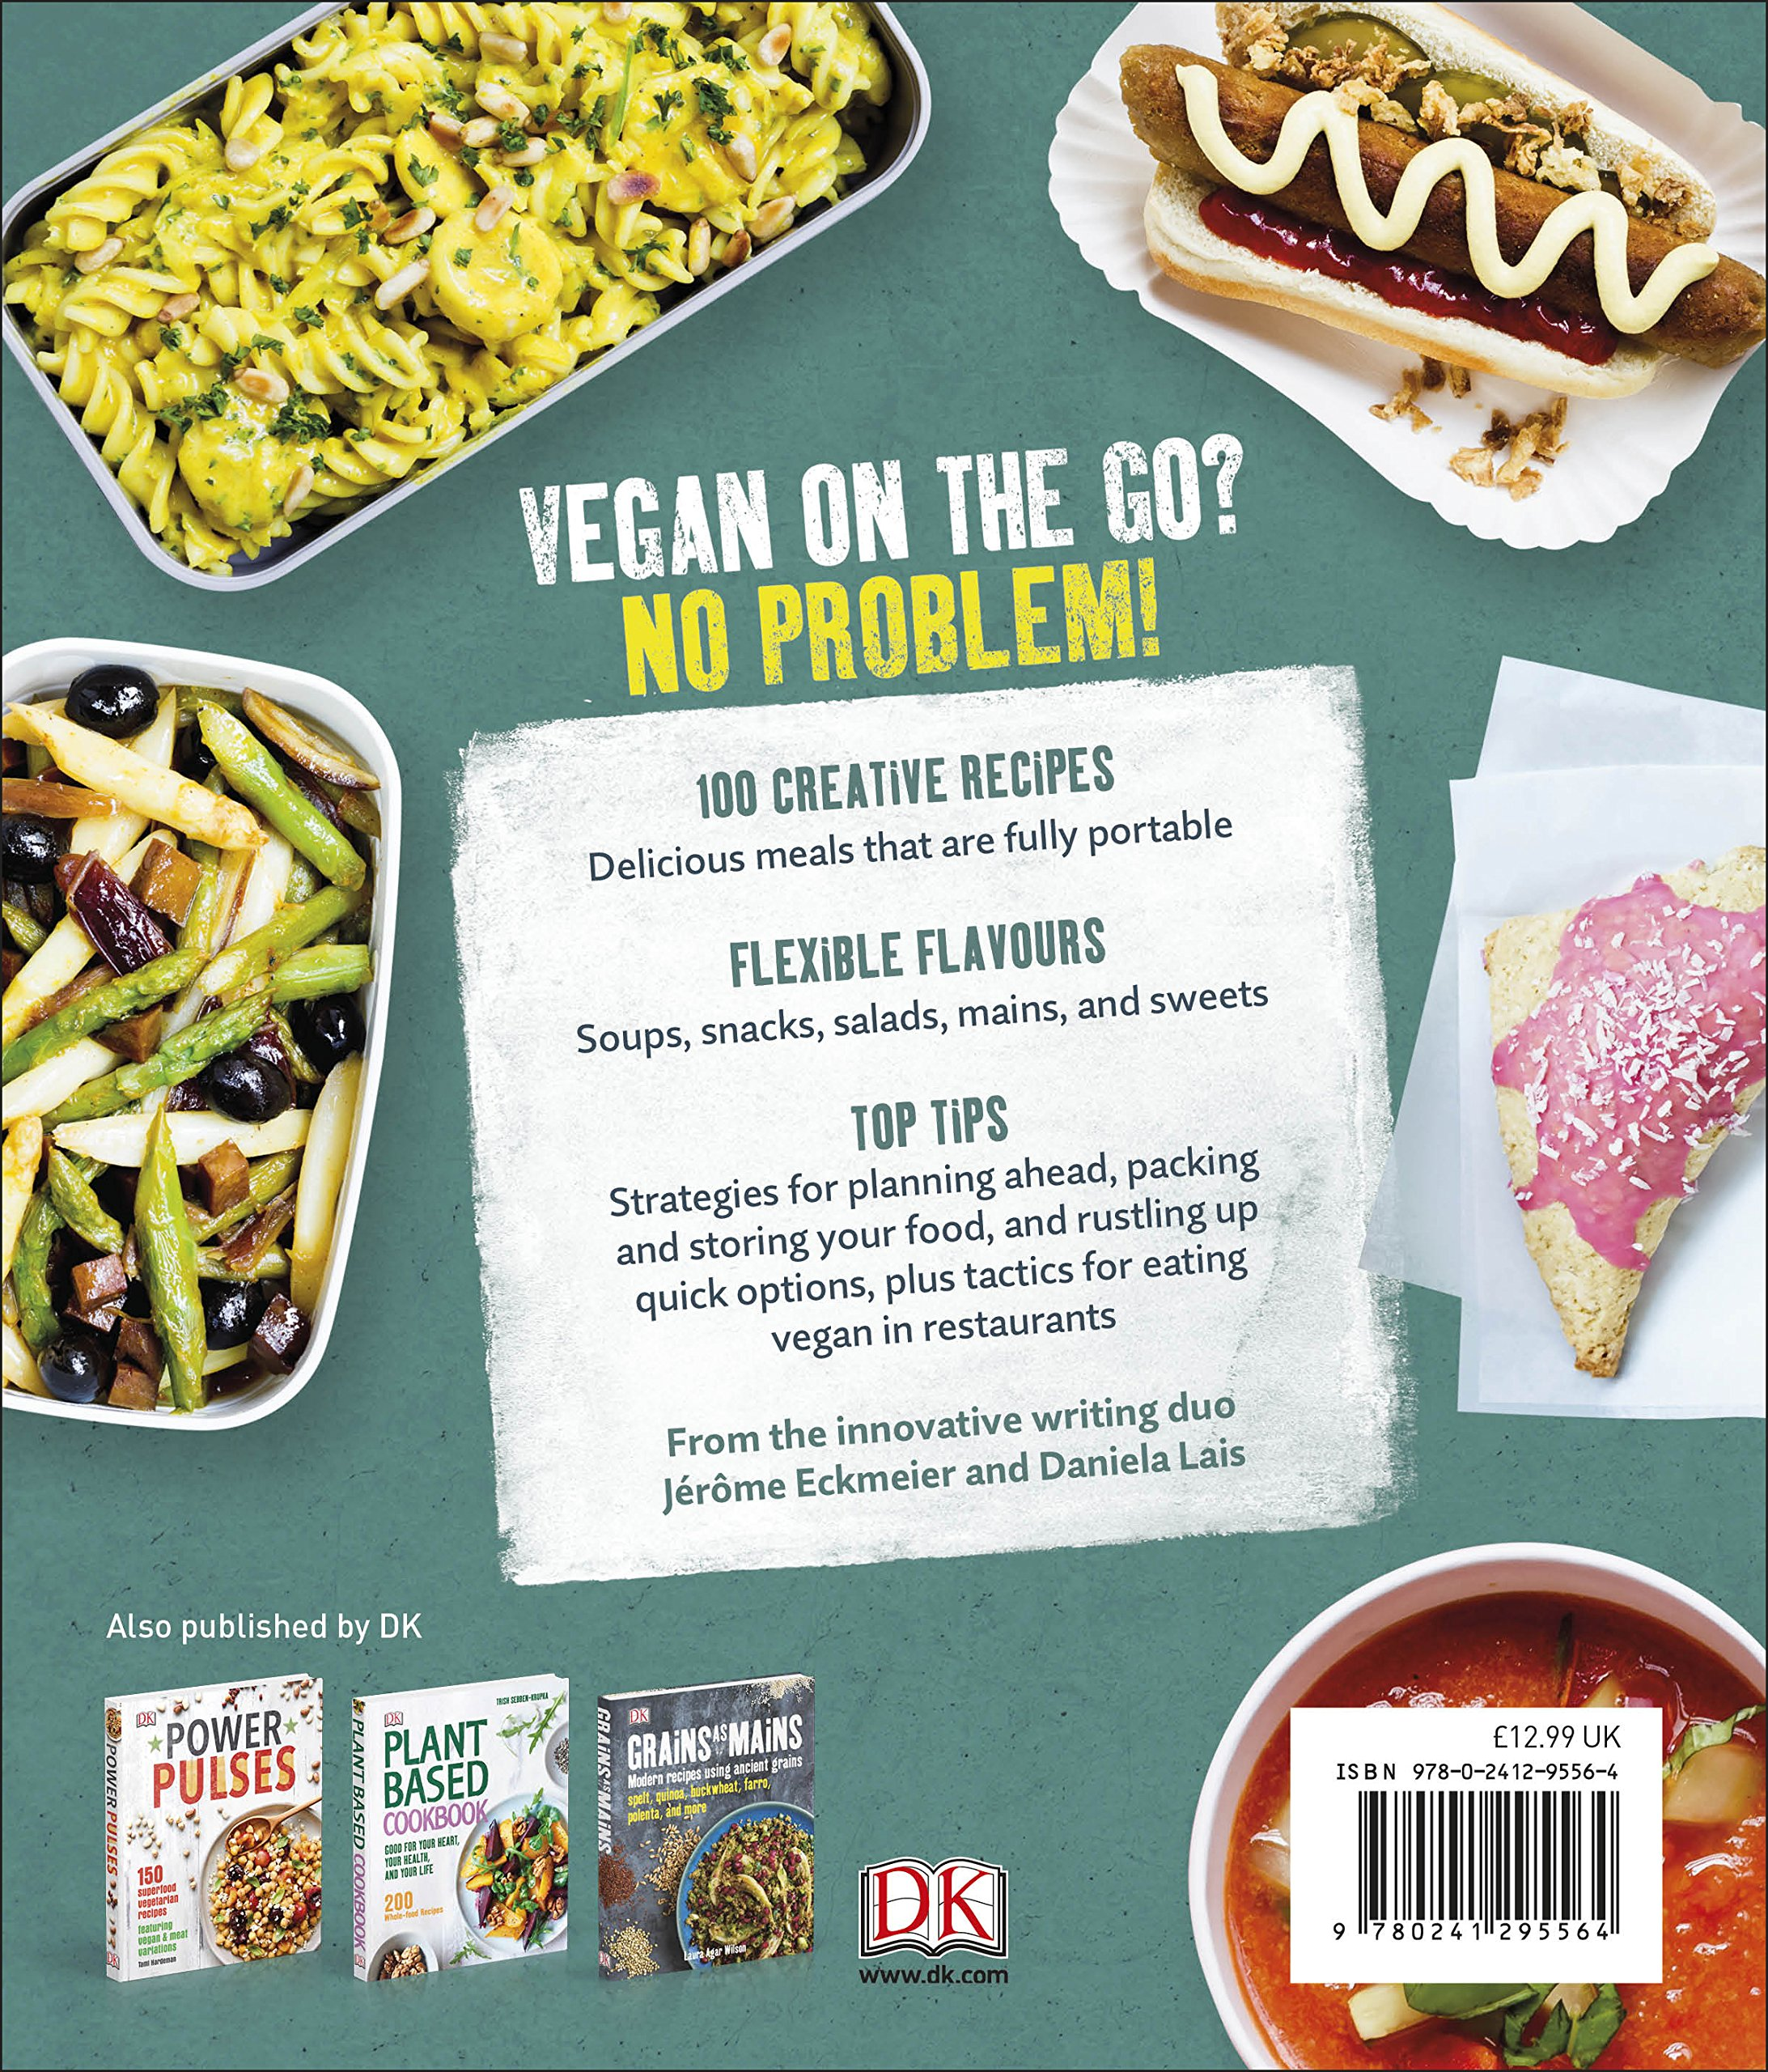 Vegan on the go amazon jrme eckmeier daniela lais libros en vegan on the go amazon jrme eckmeier daniela lais libros en idiomas extranjeros forumfinder Choice Image